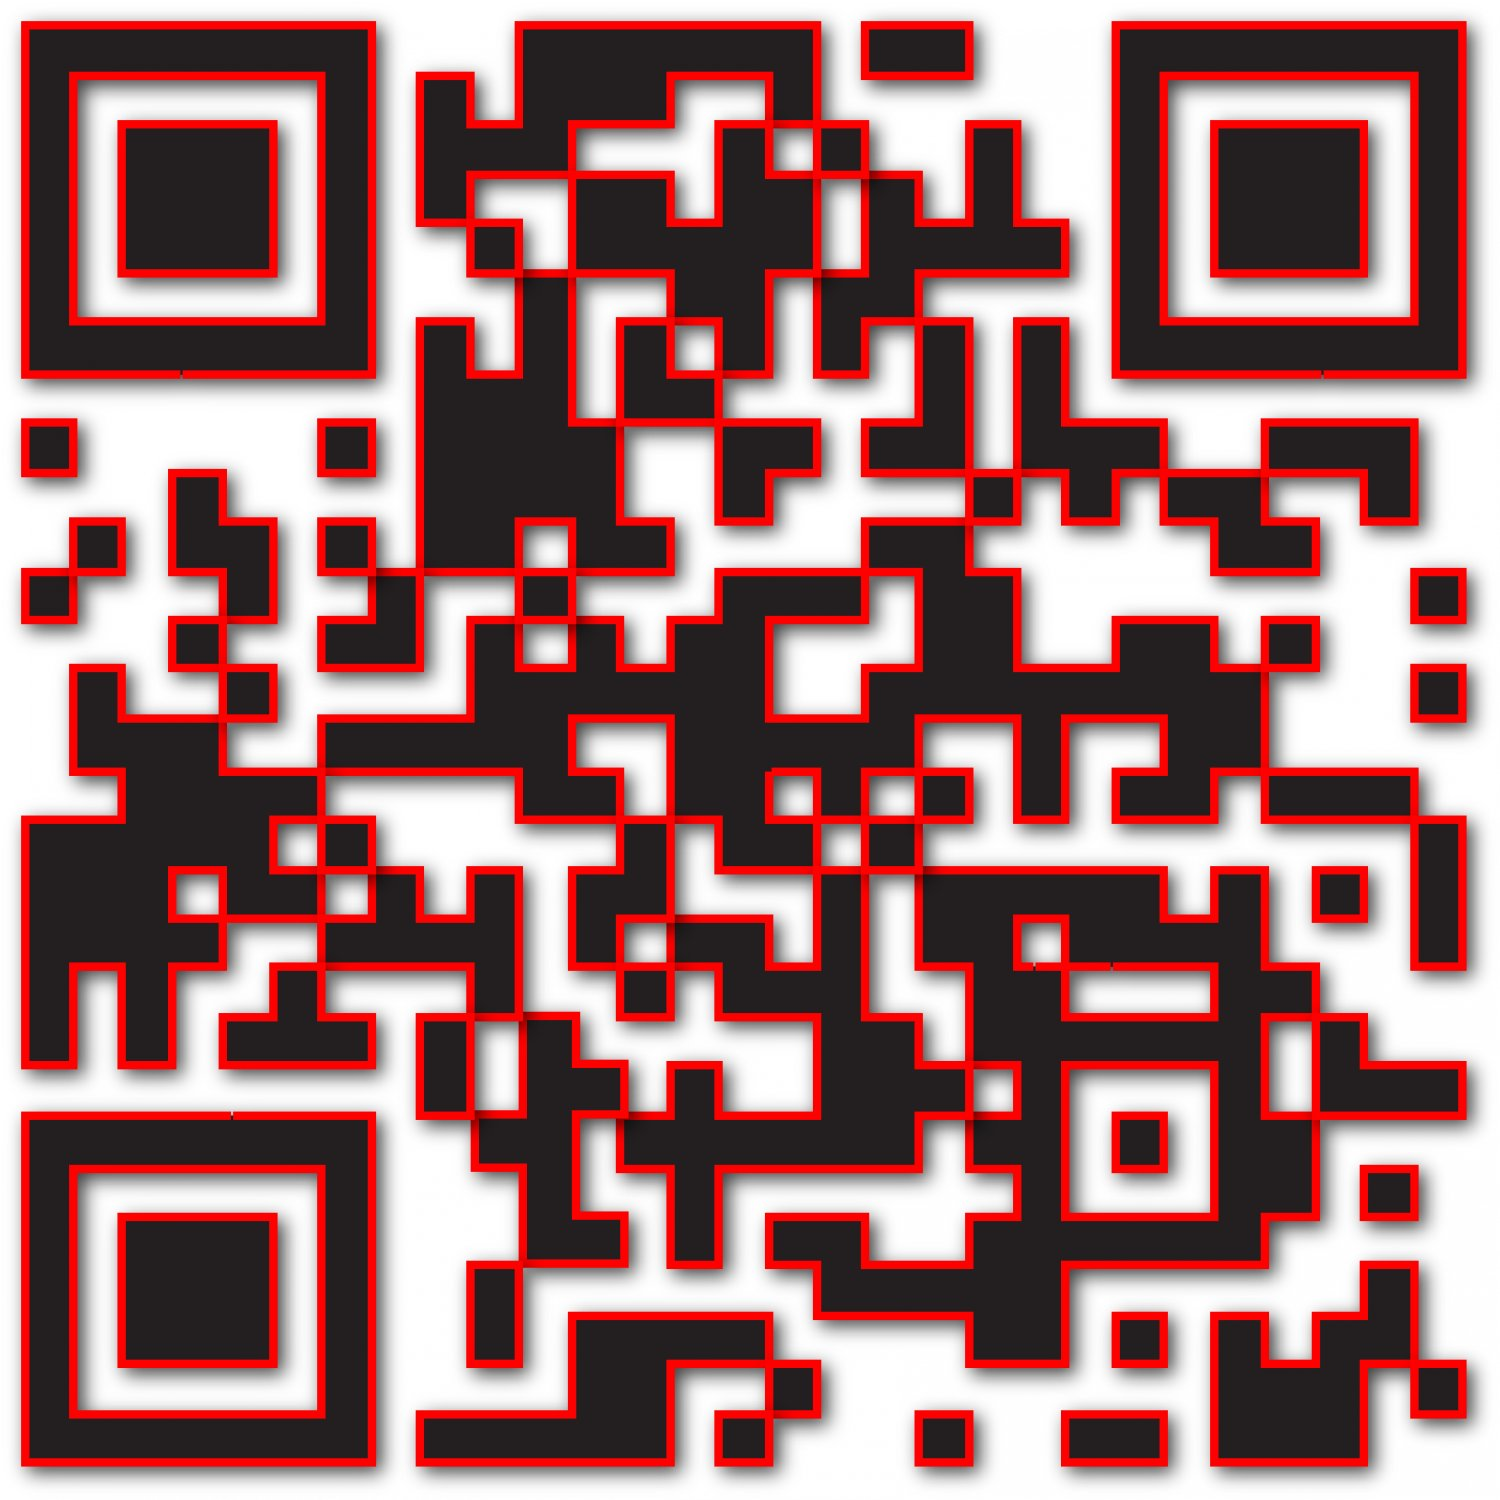 - Art and the Zen of QR Codes -- Making QaRt -  - Art and the Zen of QR Codes - QaRt - making art from QR codes. - Tony Karp, design, art, photography, techno-impressionist, techno-impressionism, aerial photography , drone , drones , dji , mavic pro , video , 3D printing - Books -